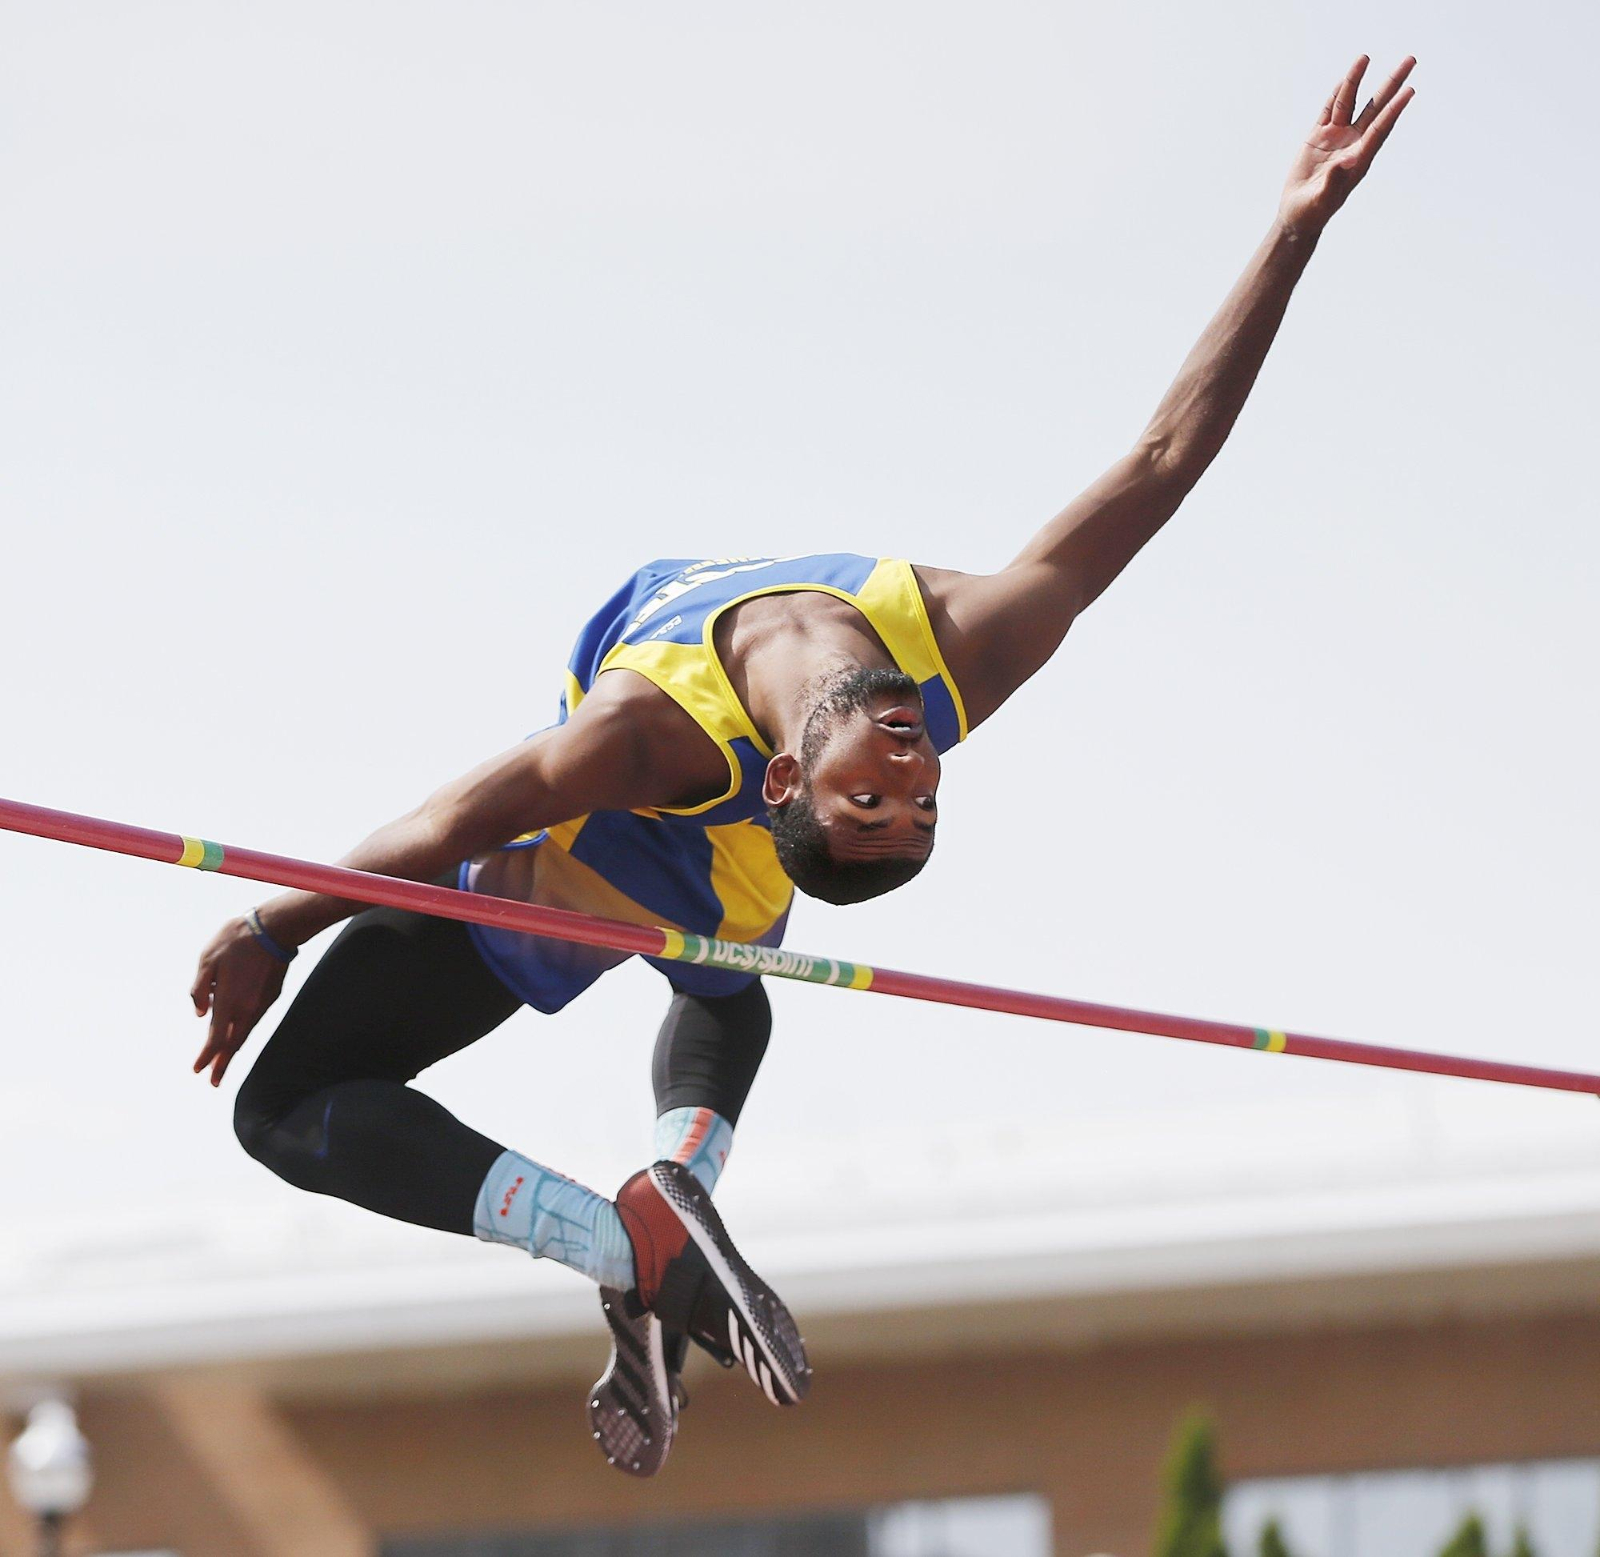 Wooster High School to Celebrate 2019 OHSAA Division I Track And Field High Jump Champion Lonnie Harper